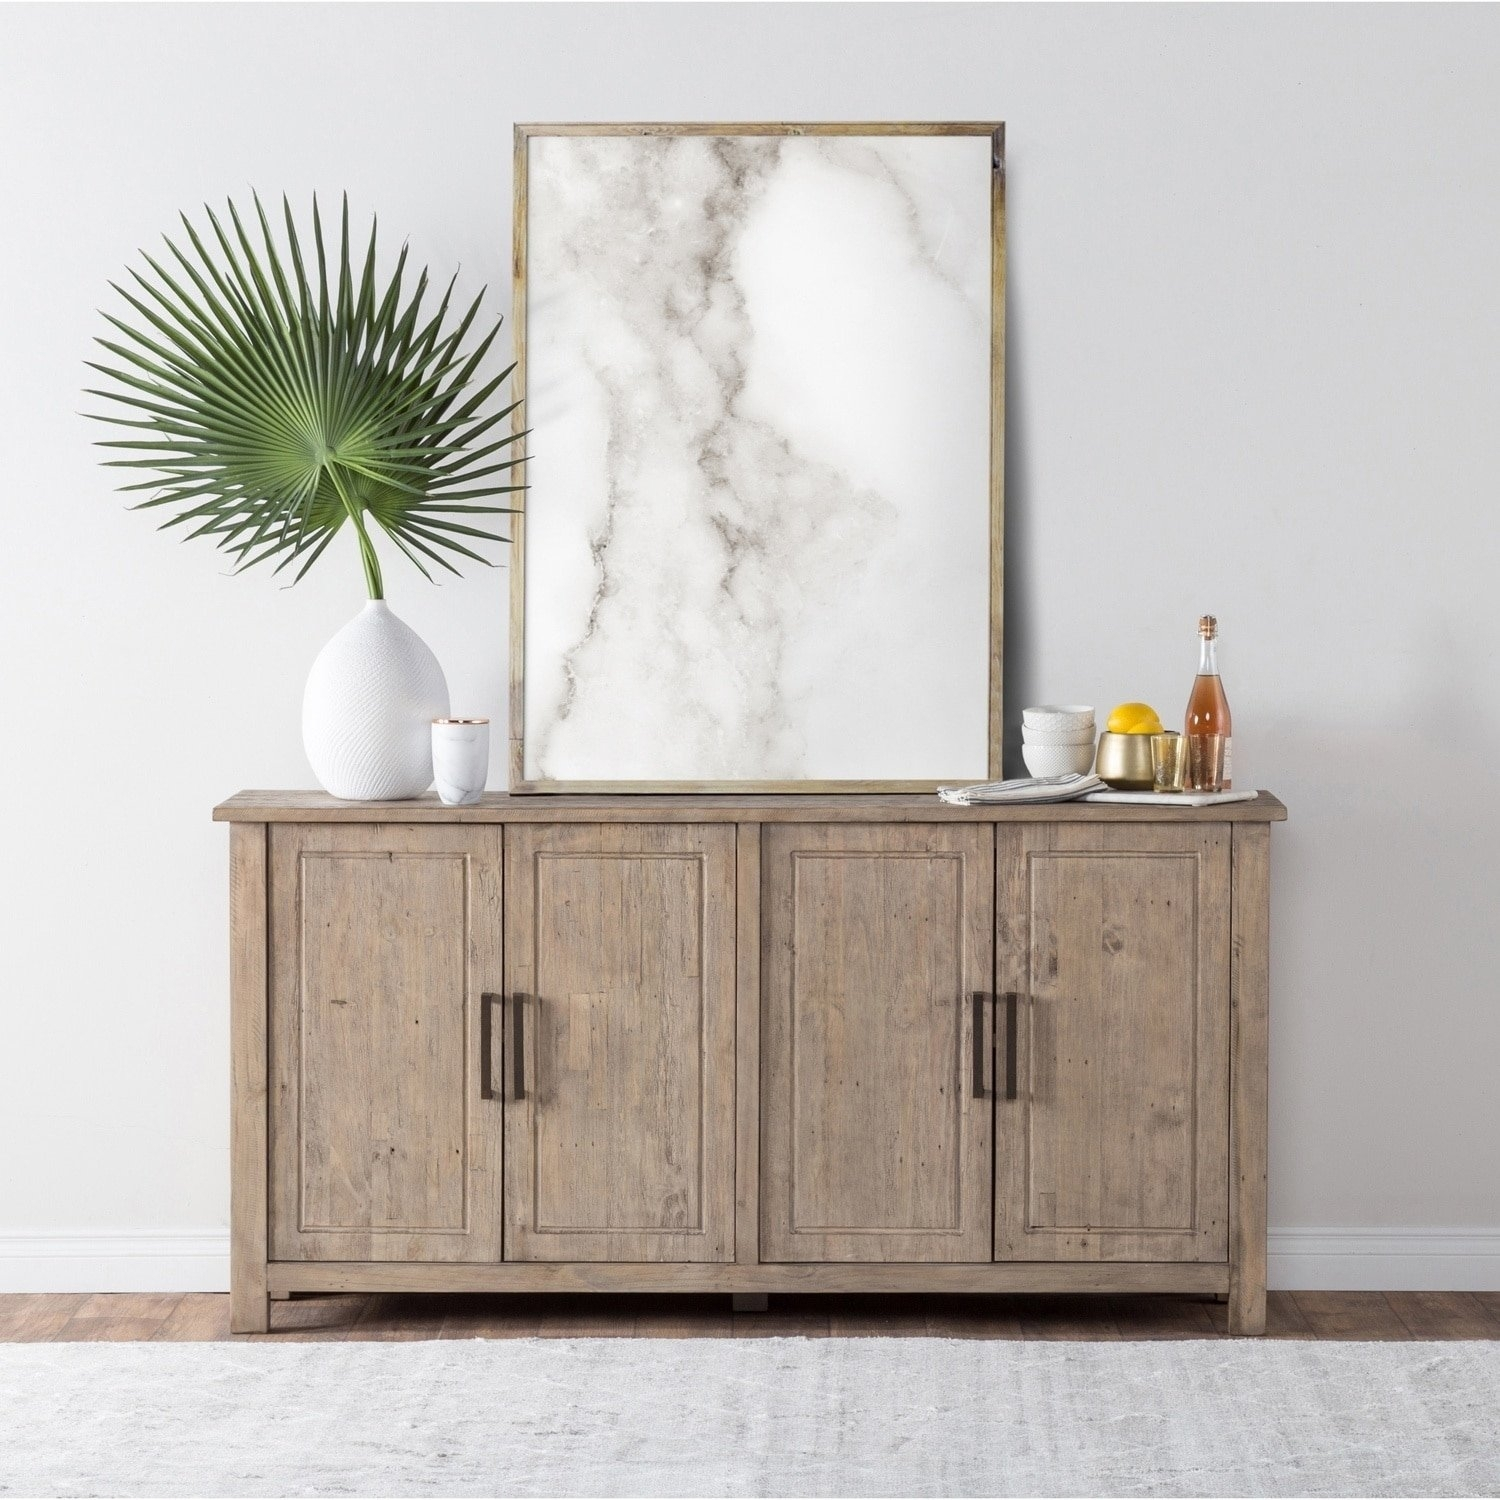 Shop Aires Reclaimed Wood 72 Inch Sideboardkosas Home – Free Inside Most Popular Brown Wood 72 Inch Sideboards (#14 of 20)